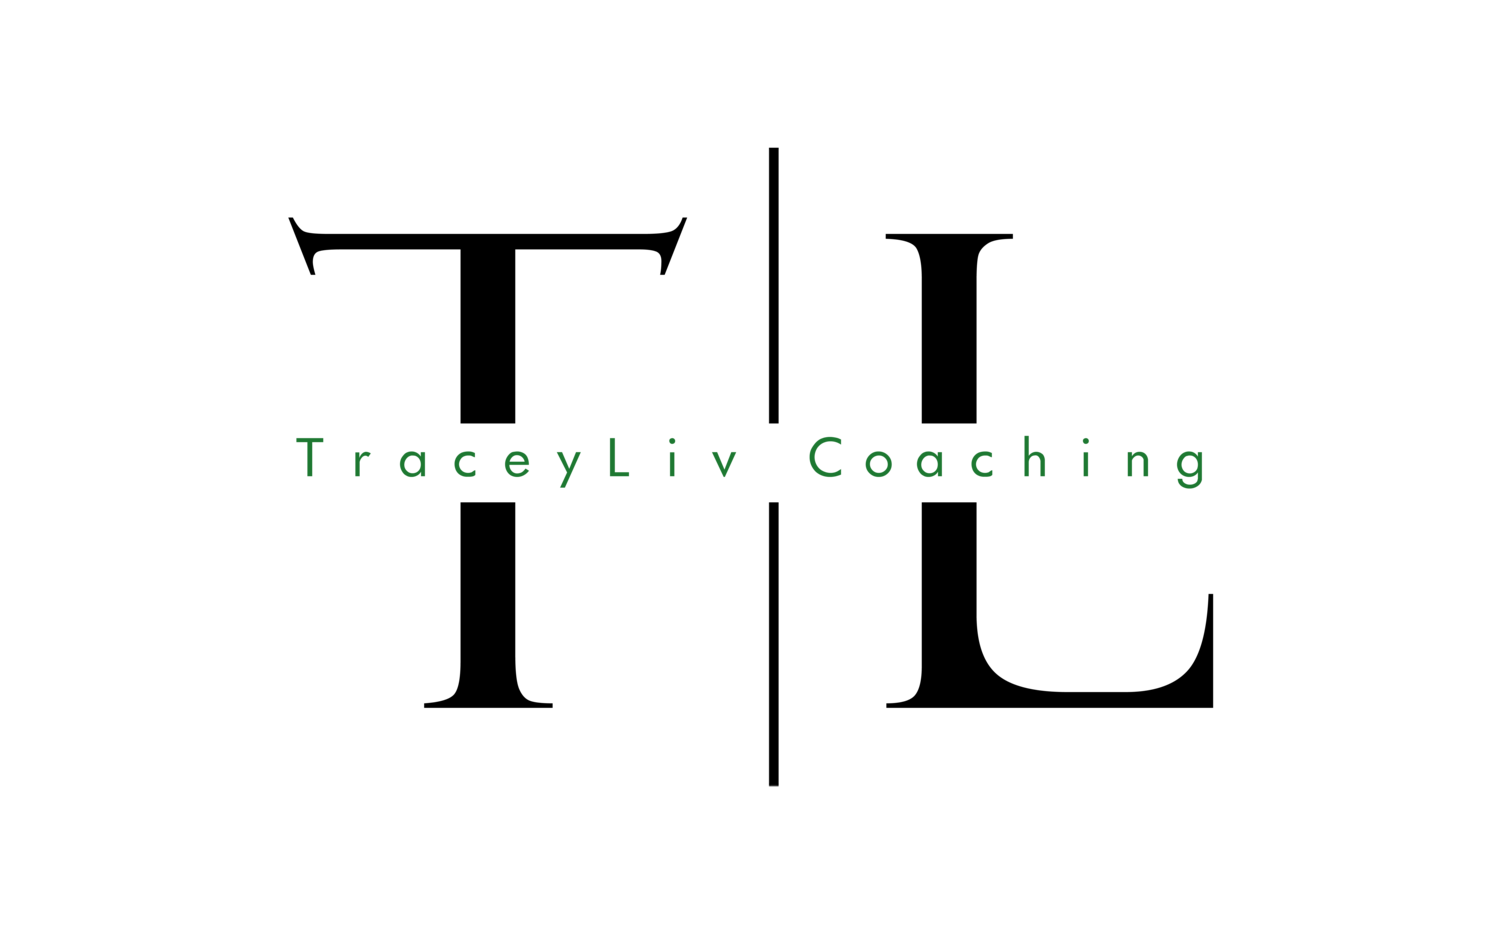 TraceyLiv Coaching